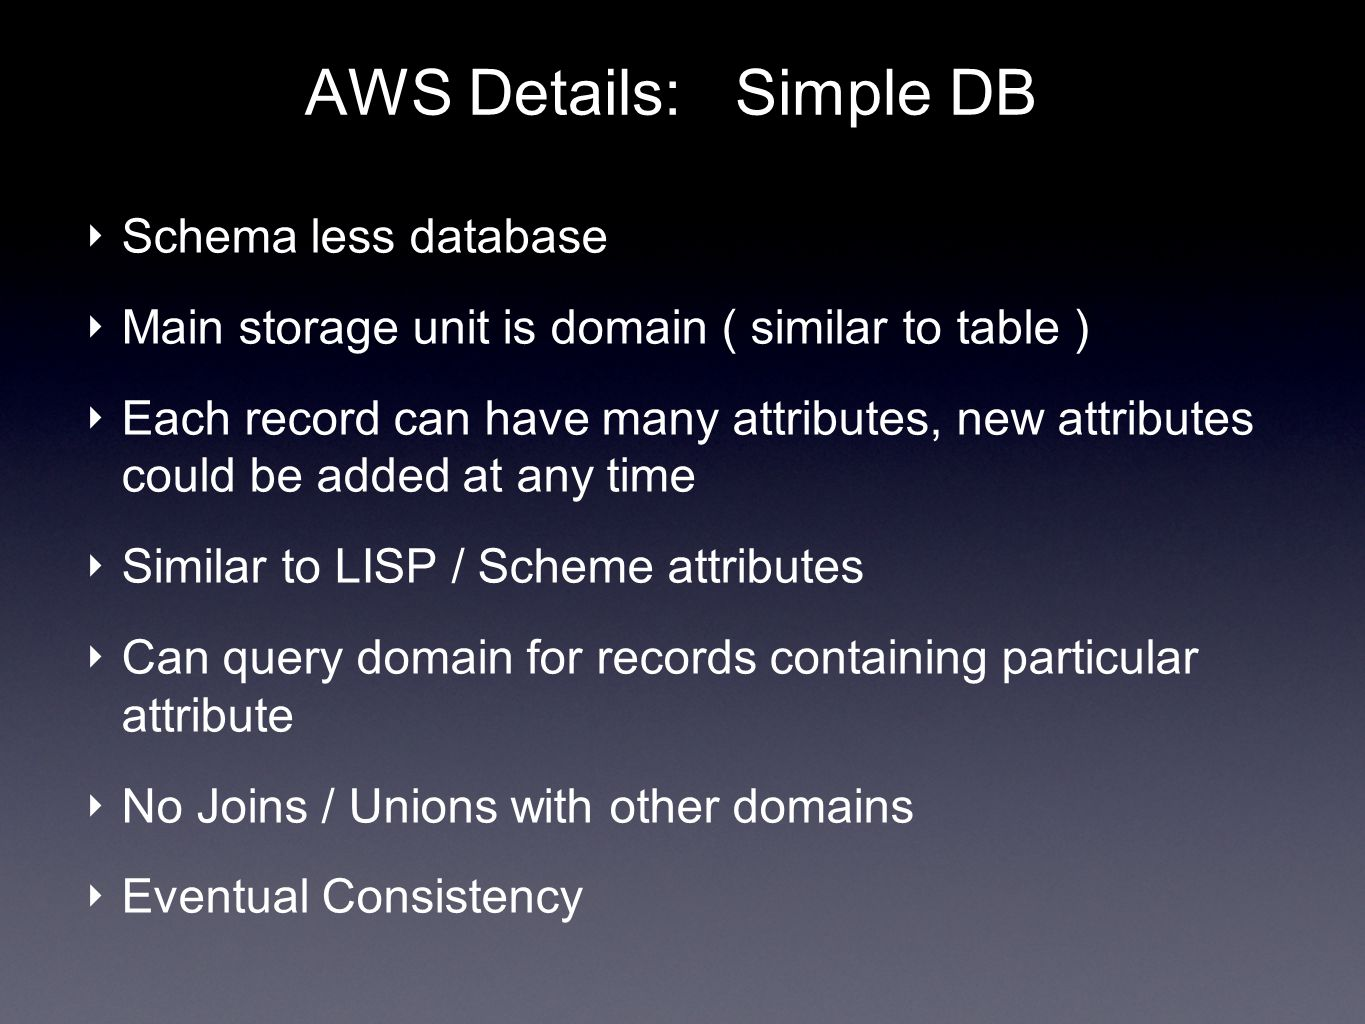 AWS Details: Simple DB Schema less database Main storage unit is domain ( similar to table ) Each record can have many attributes, new attributes could be added at any time Similar to LISP / Scheme attributes Can query domain for records containing particular attribute No Joins / Unions with other domains Eventual Consistency